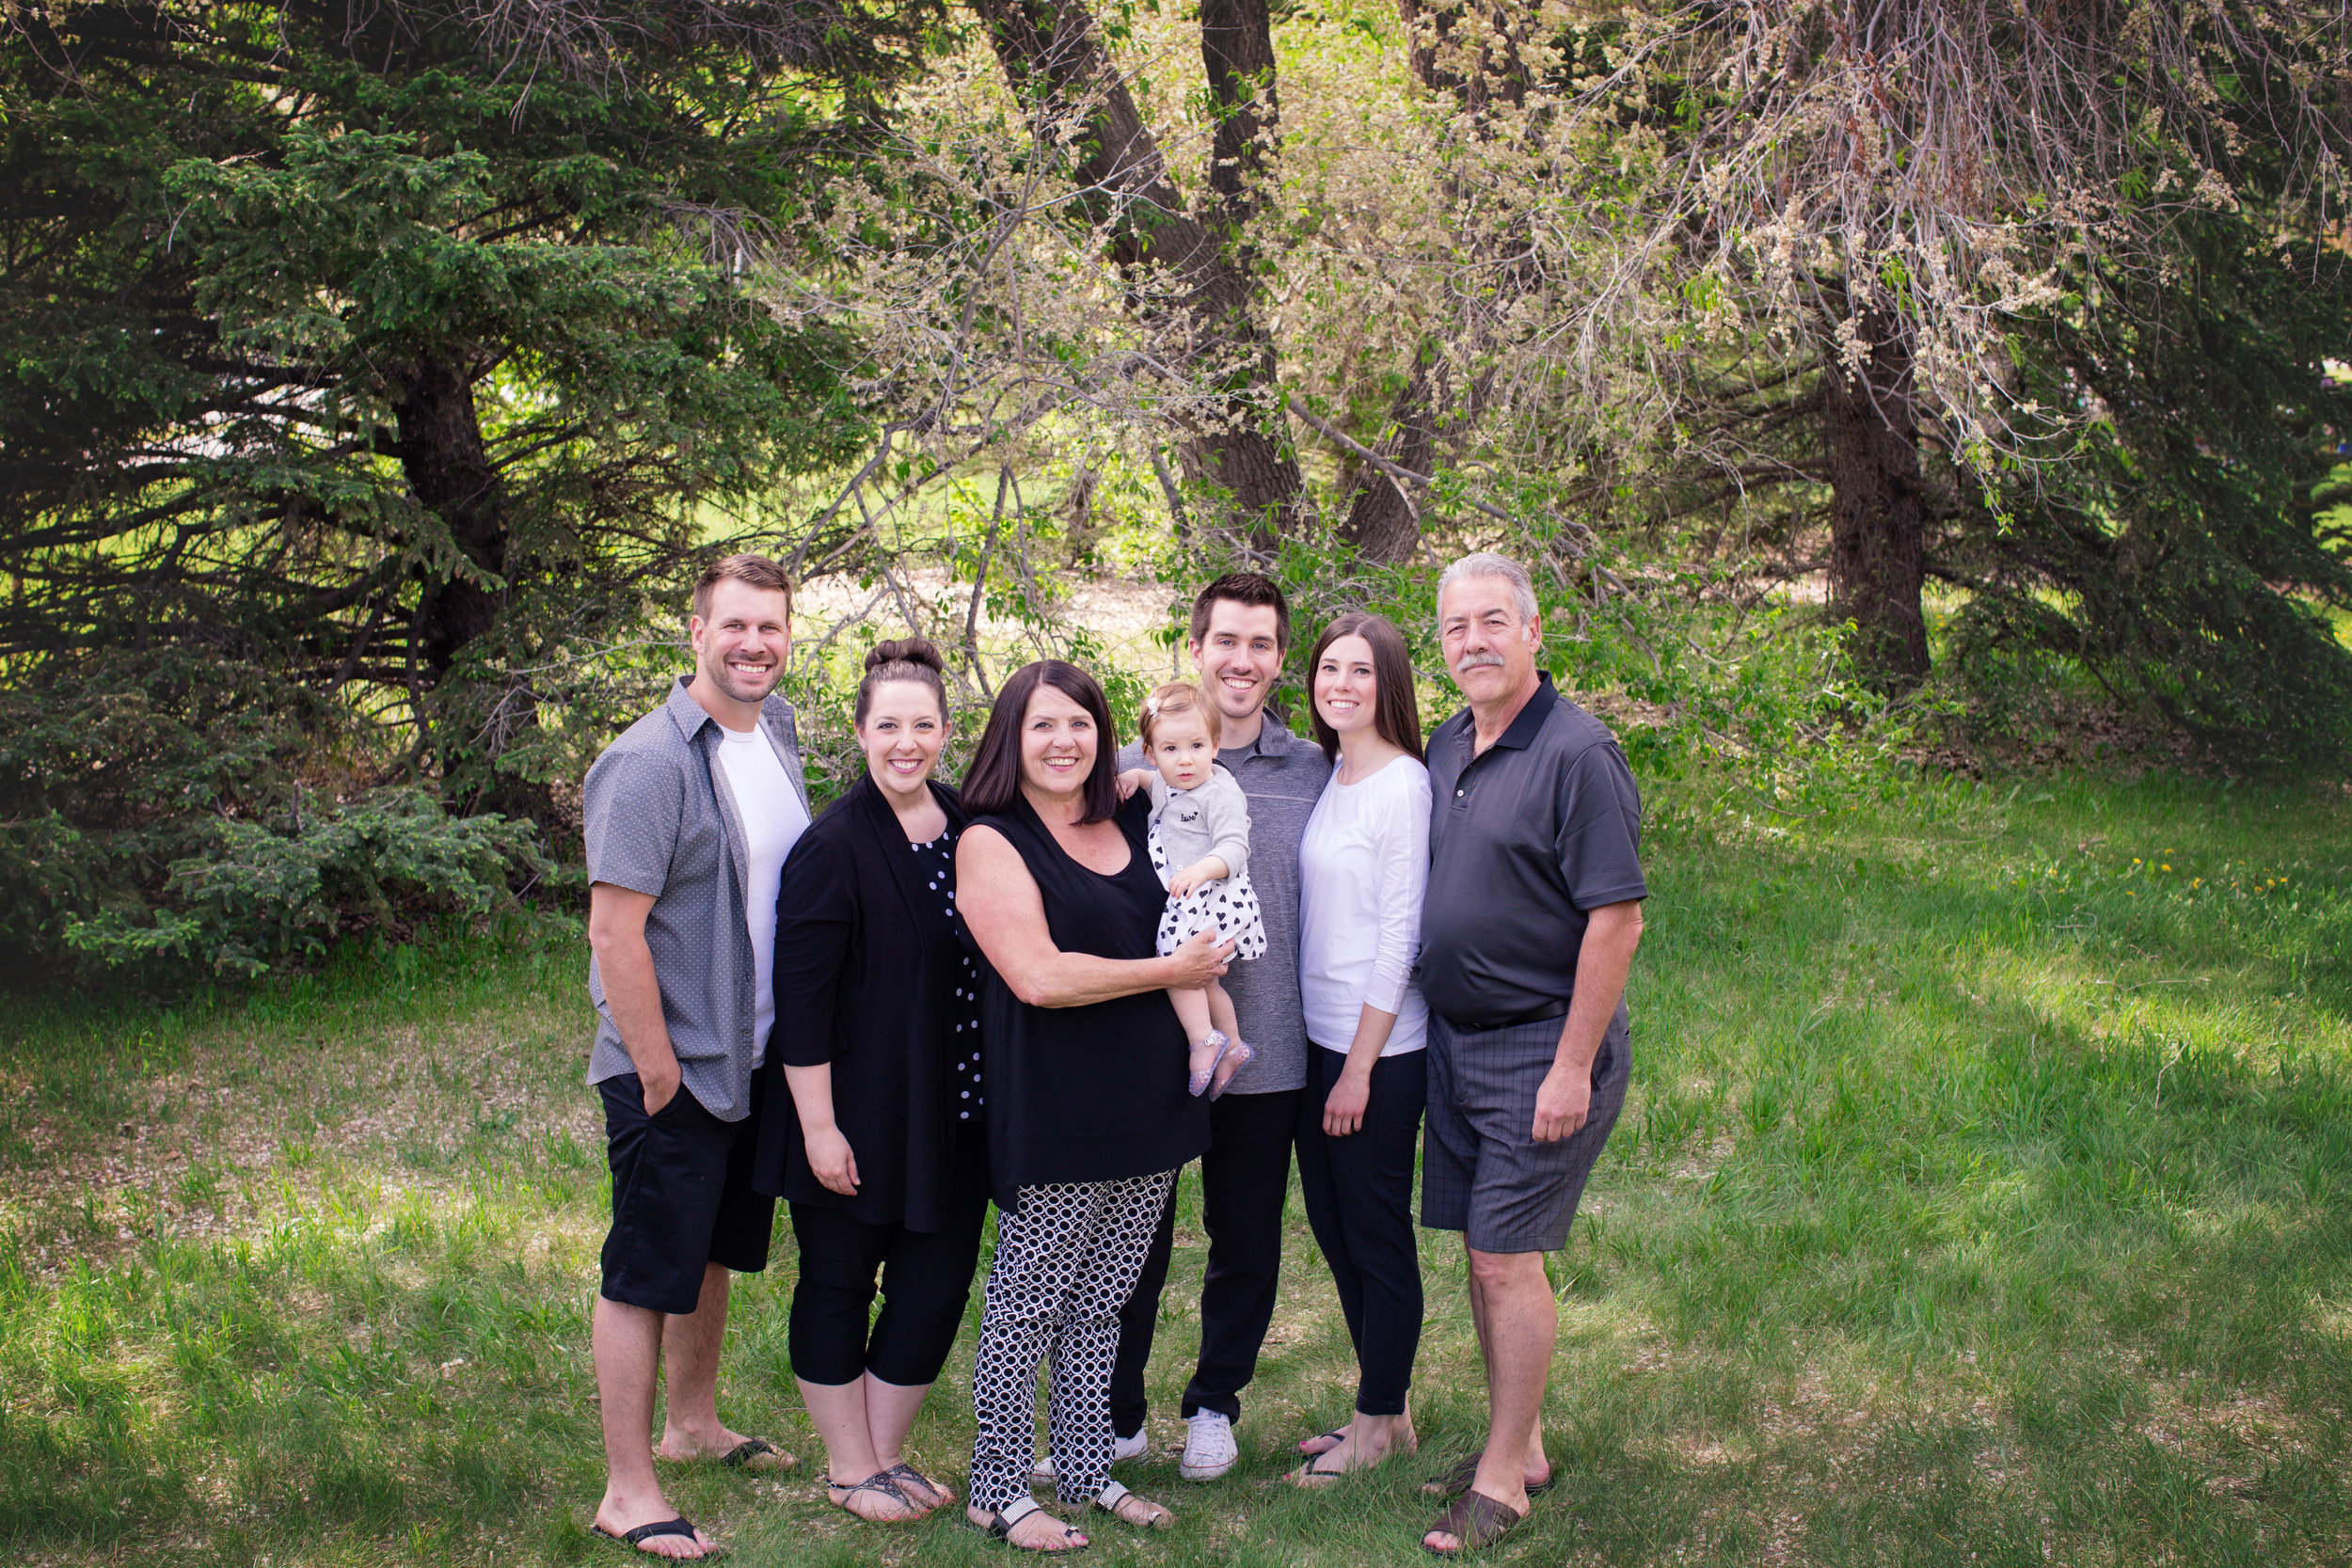 Family of 7 at Baker's Park in Calgary. Alberta family photographer. Milashka Photography